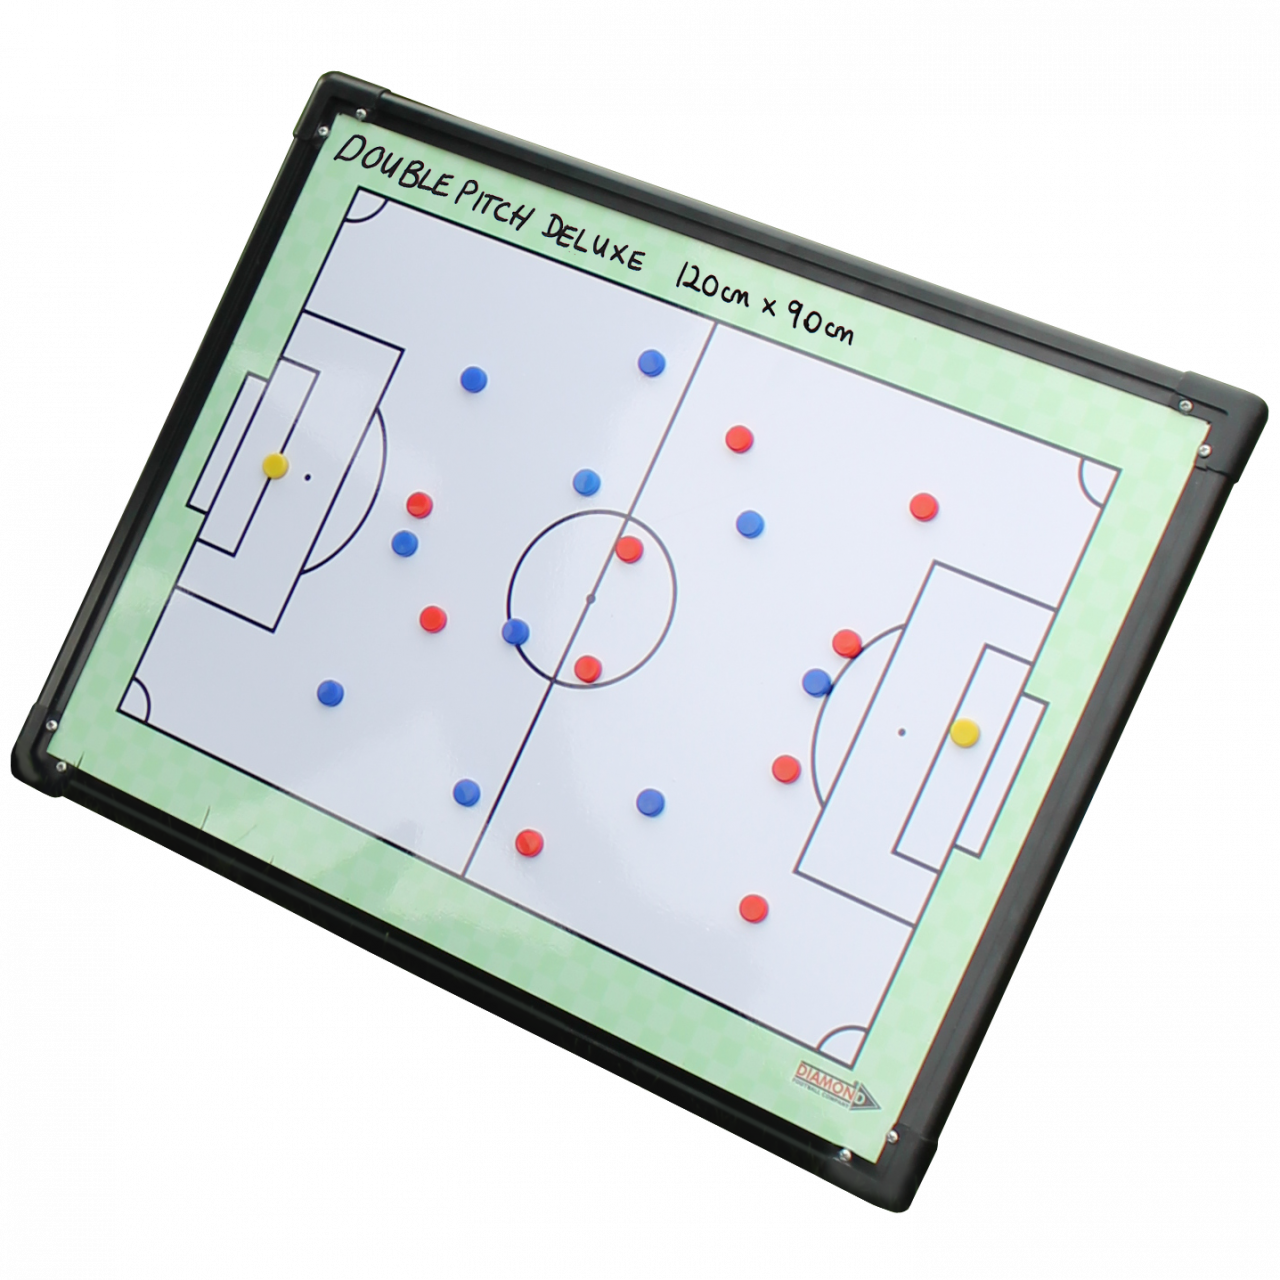 Tactic board which features two pitches